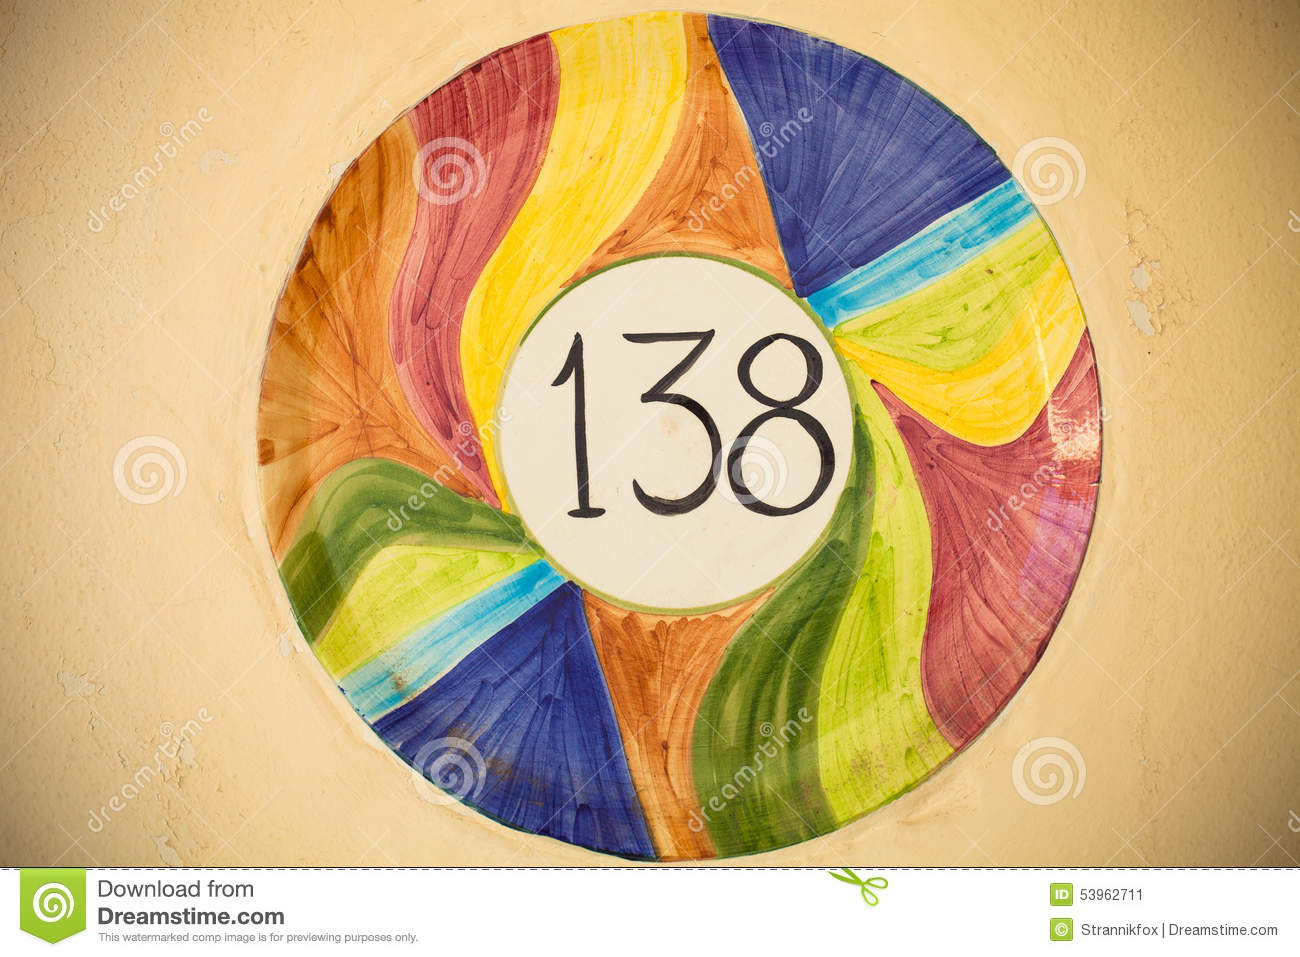 Number 138 Stock Photos & Number 138 Stock Images - Alamy